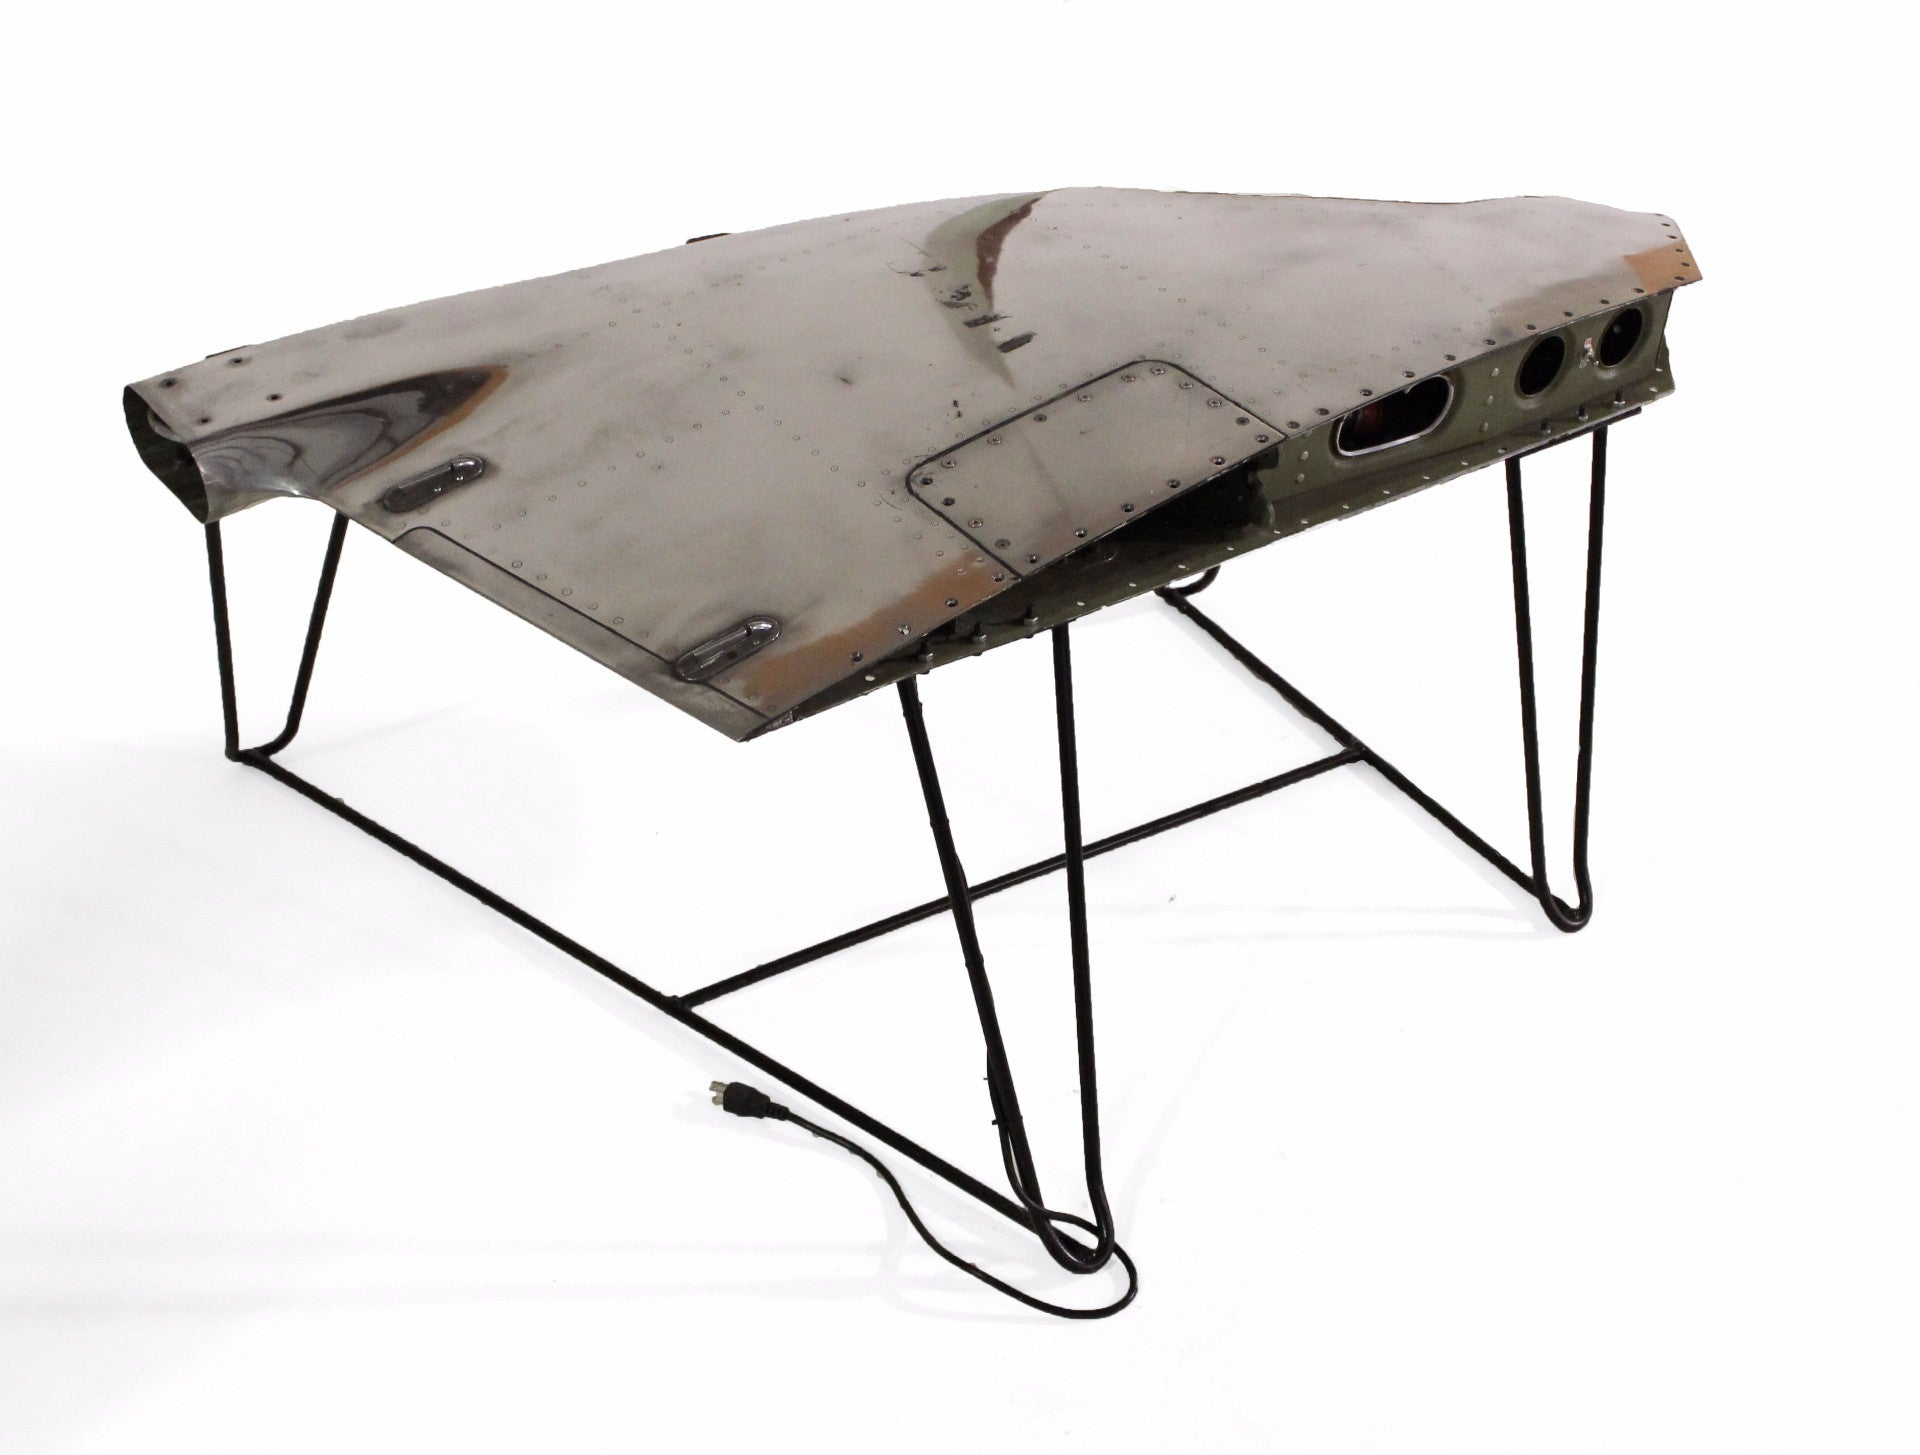 chrome airplane wing tip coffee table 24e design co rh 24estyle com airplane window coffee table airplane propeller coffee table